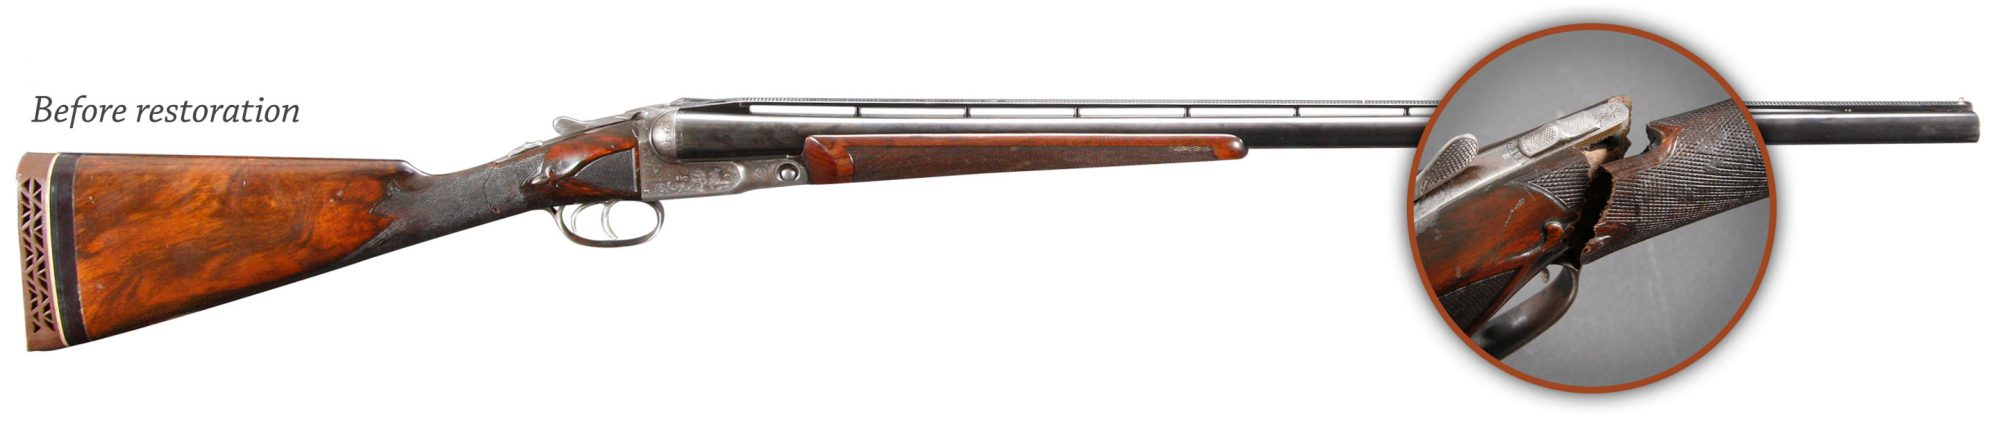 Photo of a Parker BHE 12 gauge shotgun before restoration by Turnbull Restoration of Bloomfield, NY